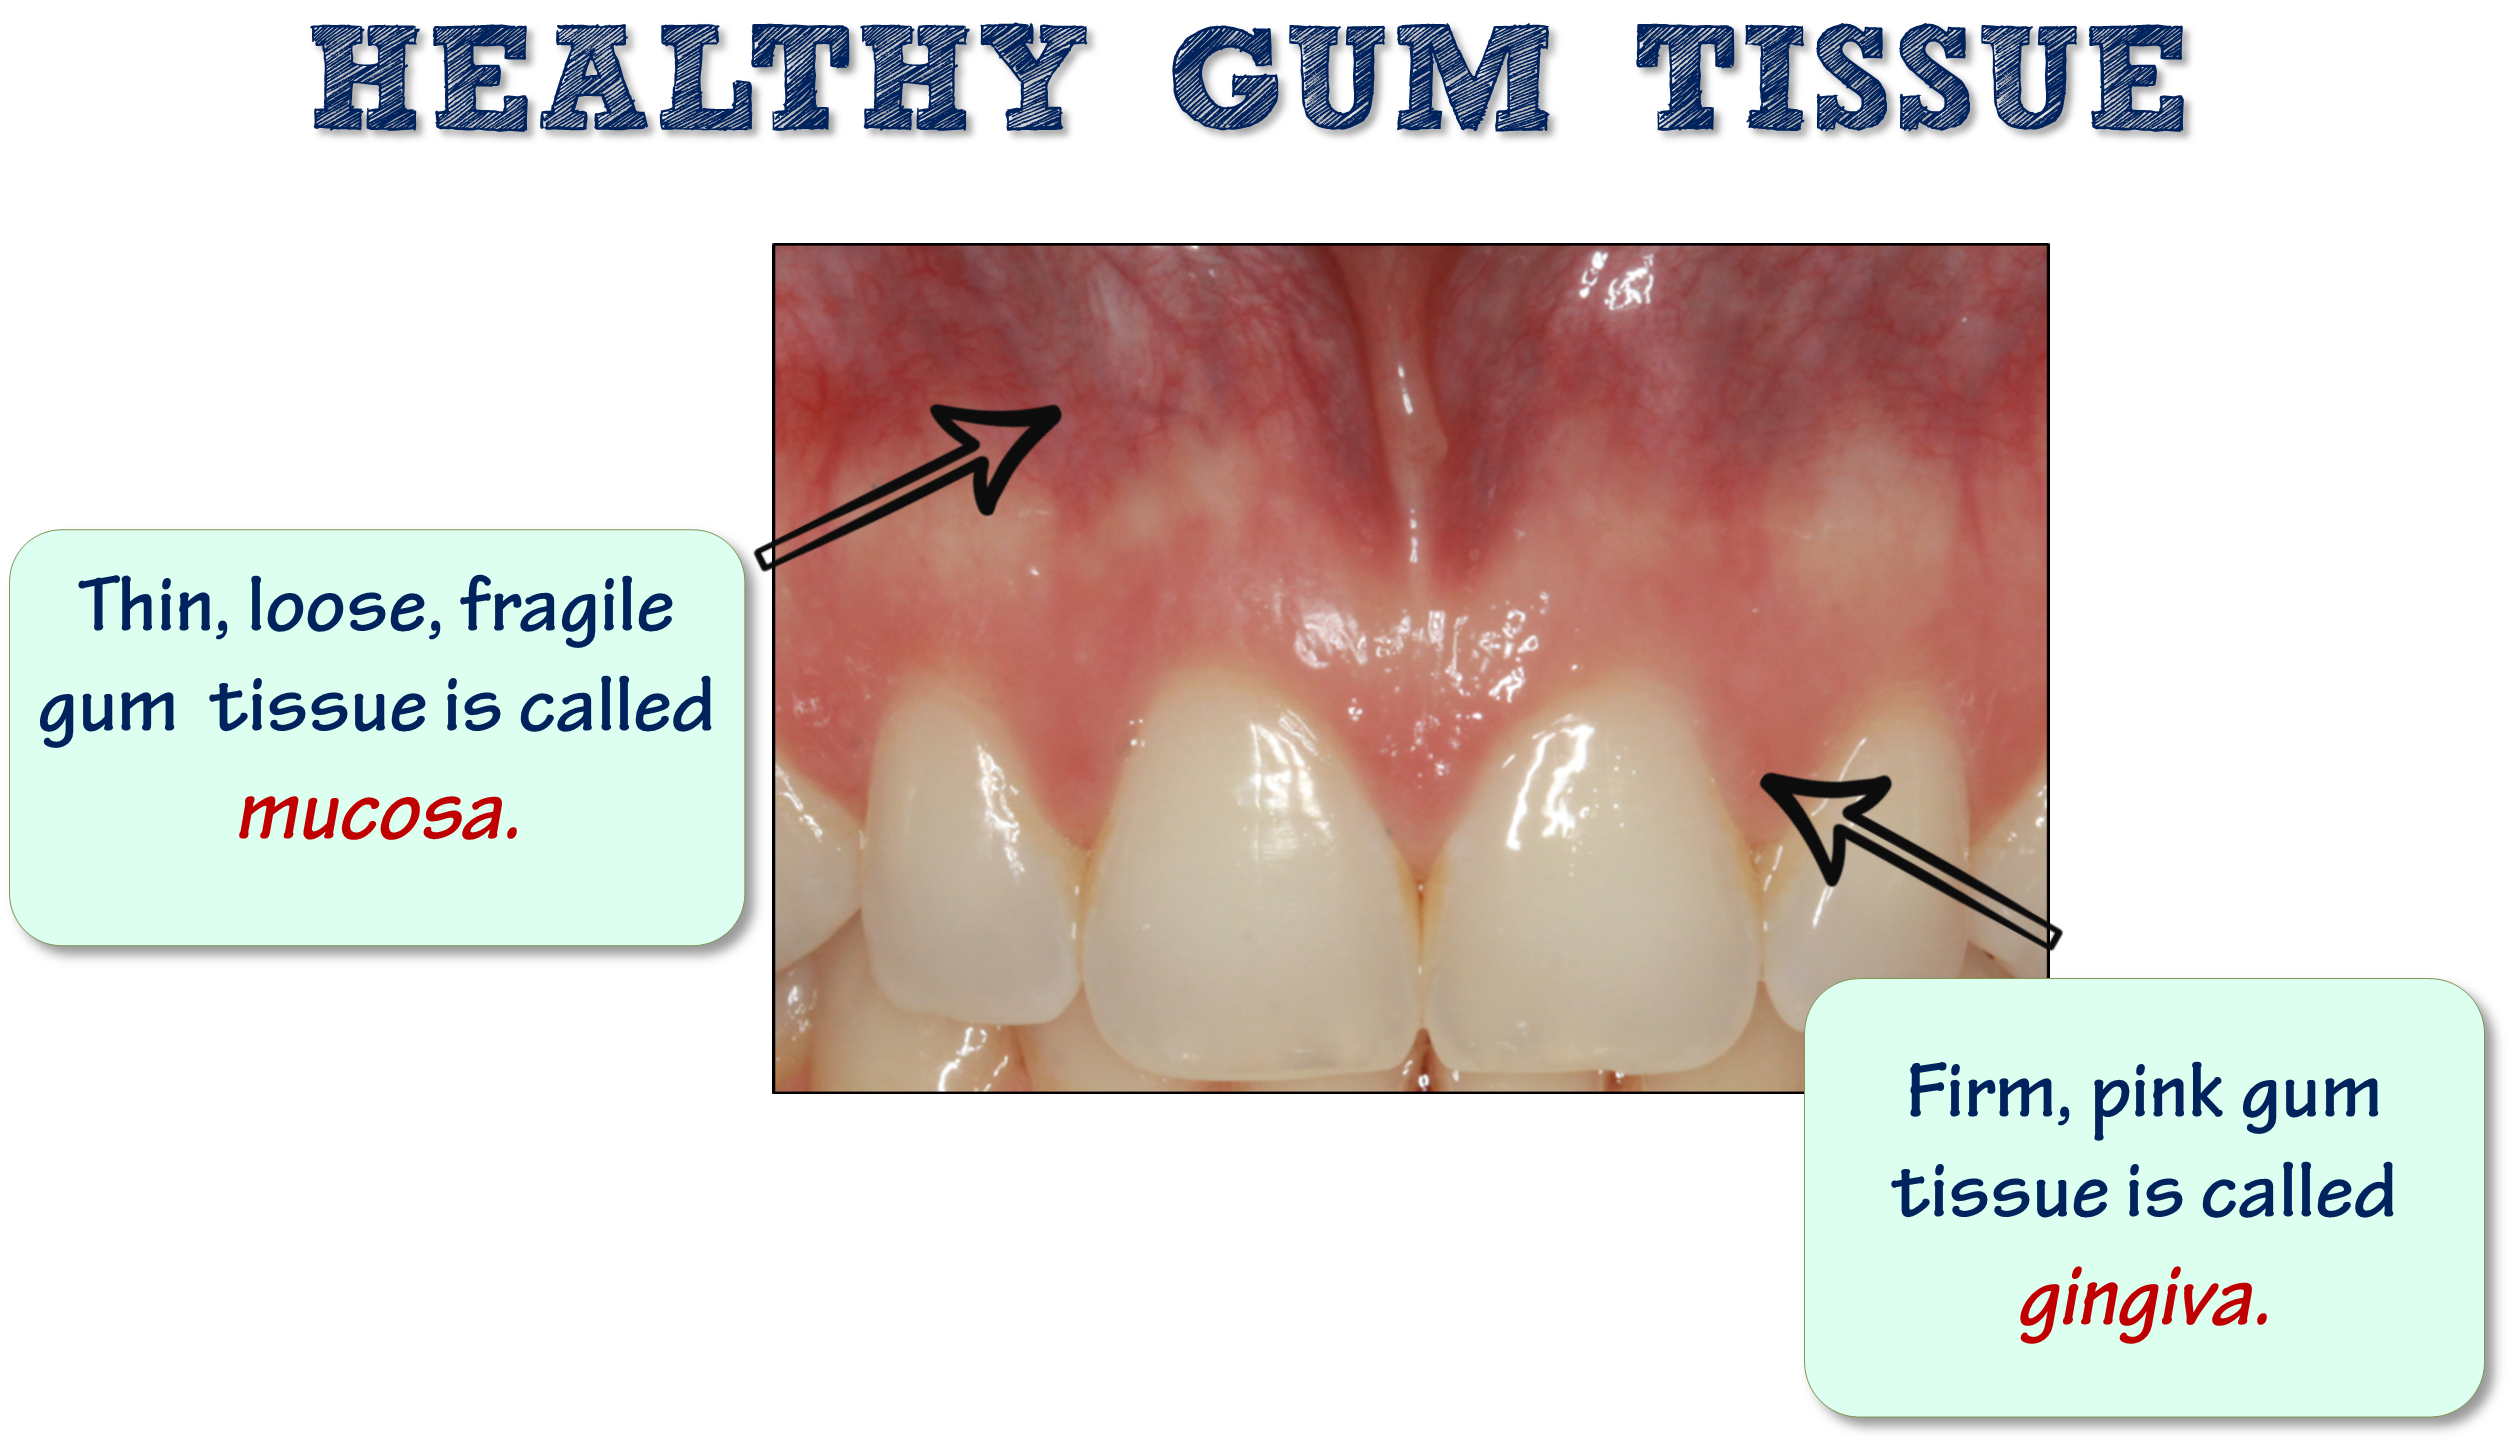 Healthy gum tissue free of periodontal disease